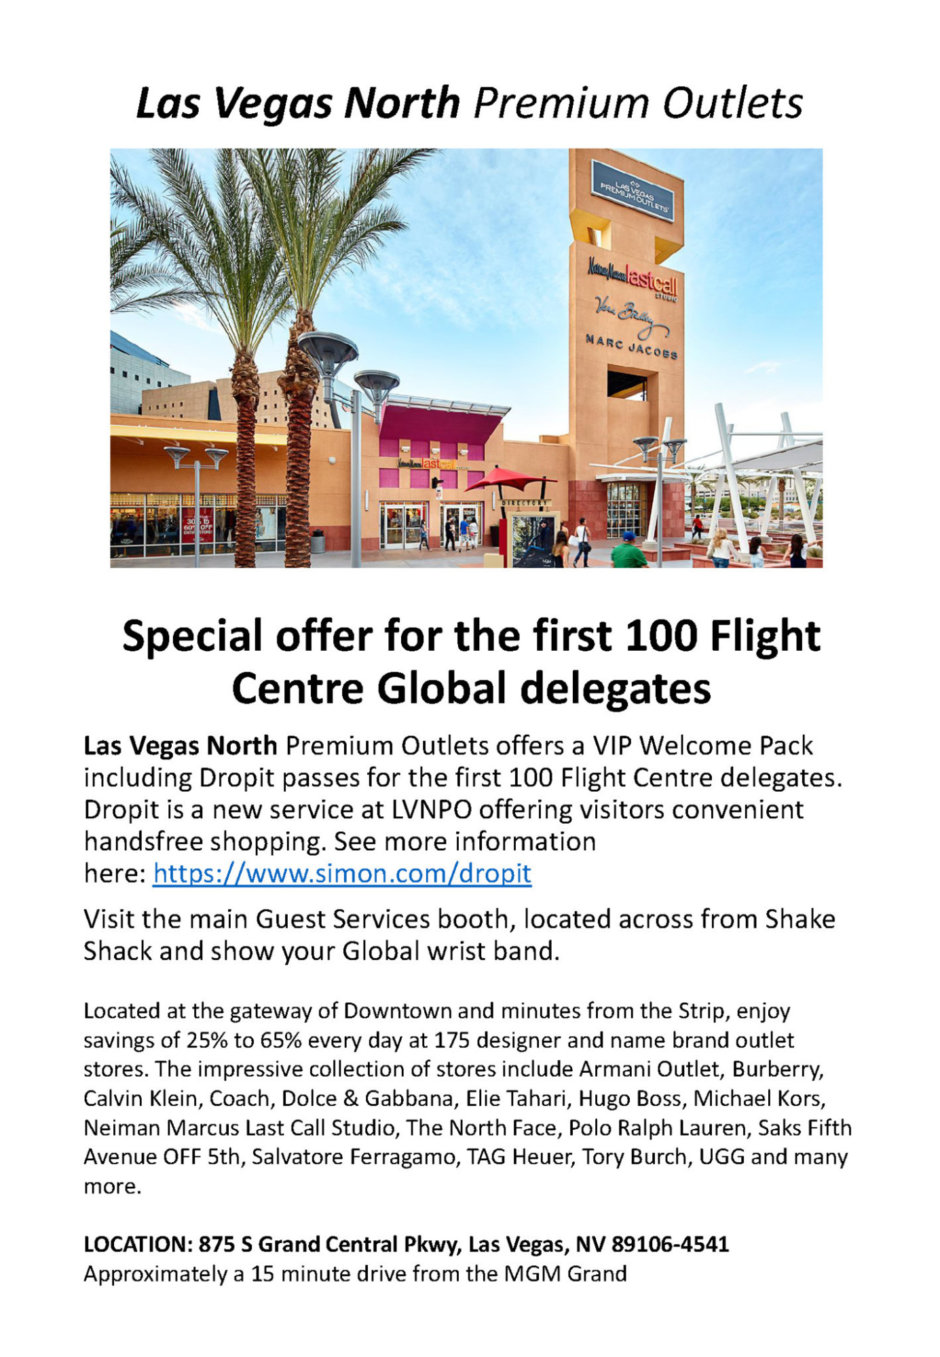 Las Vegas North Premium Outlets Global Offer